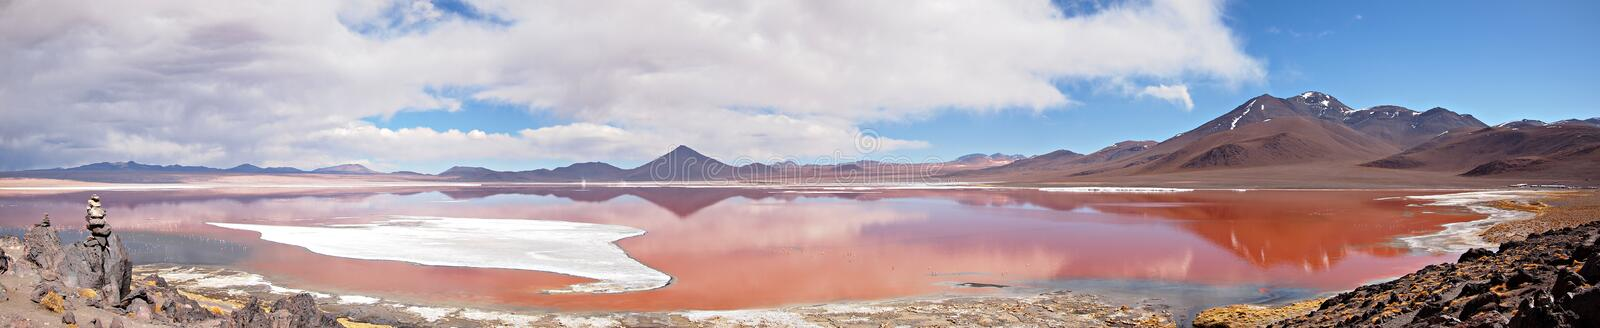 Panorama Red Lagoon, Bolivia stock images